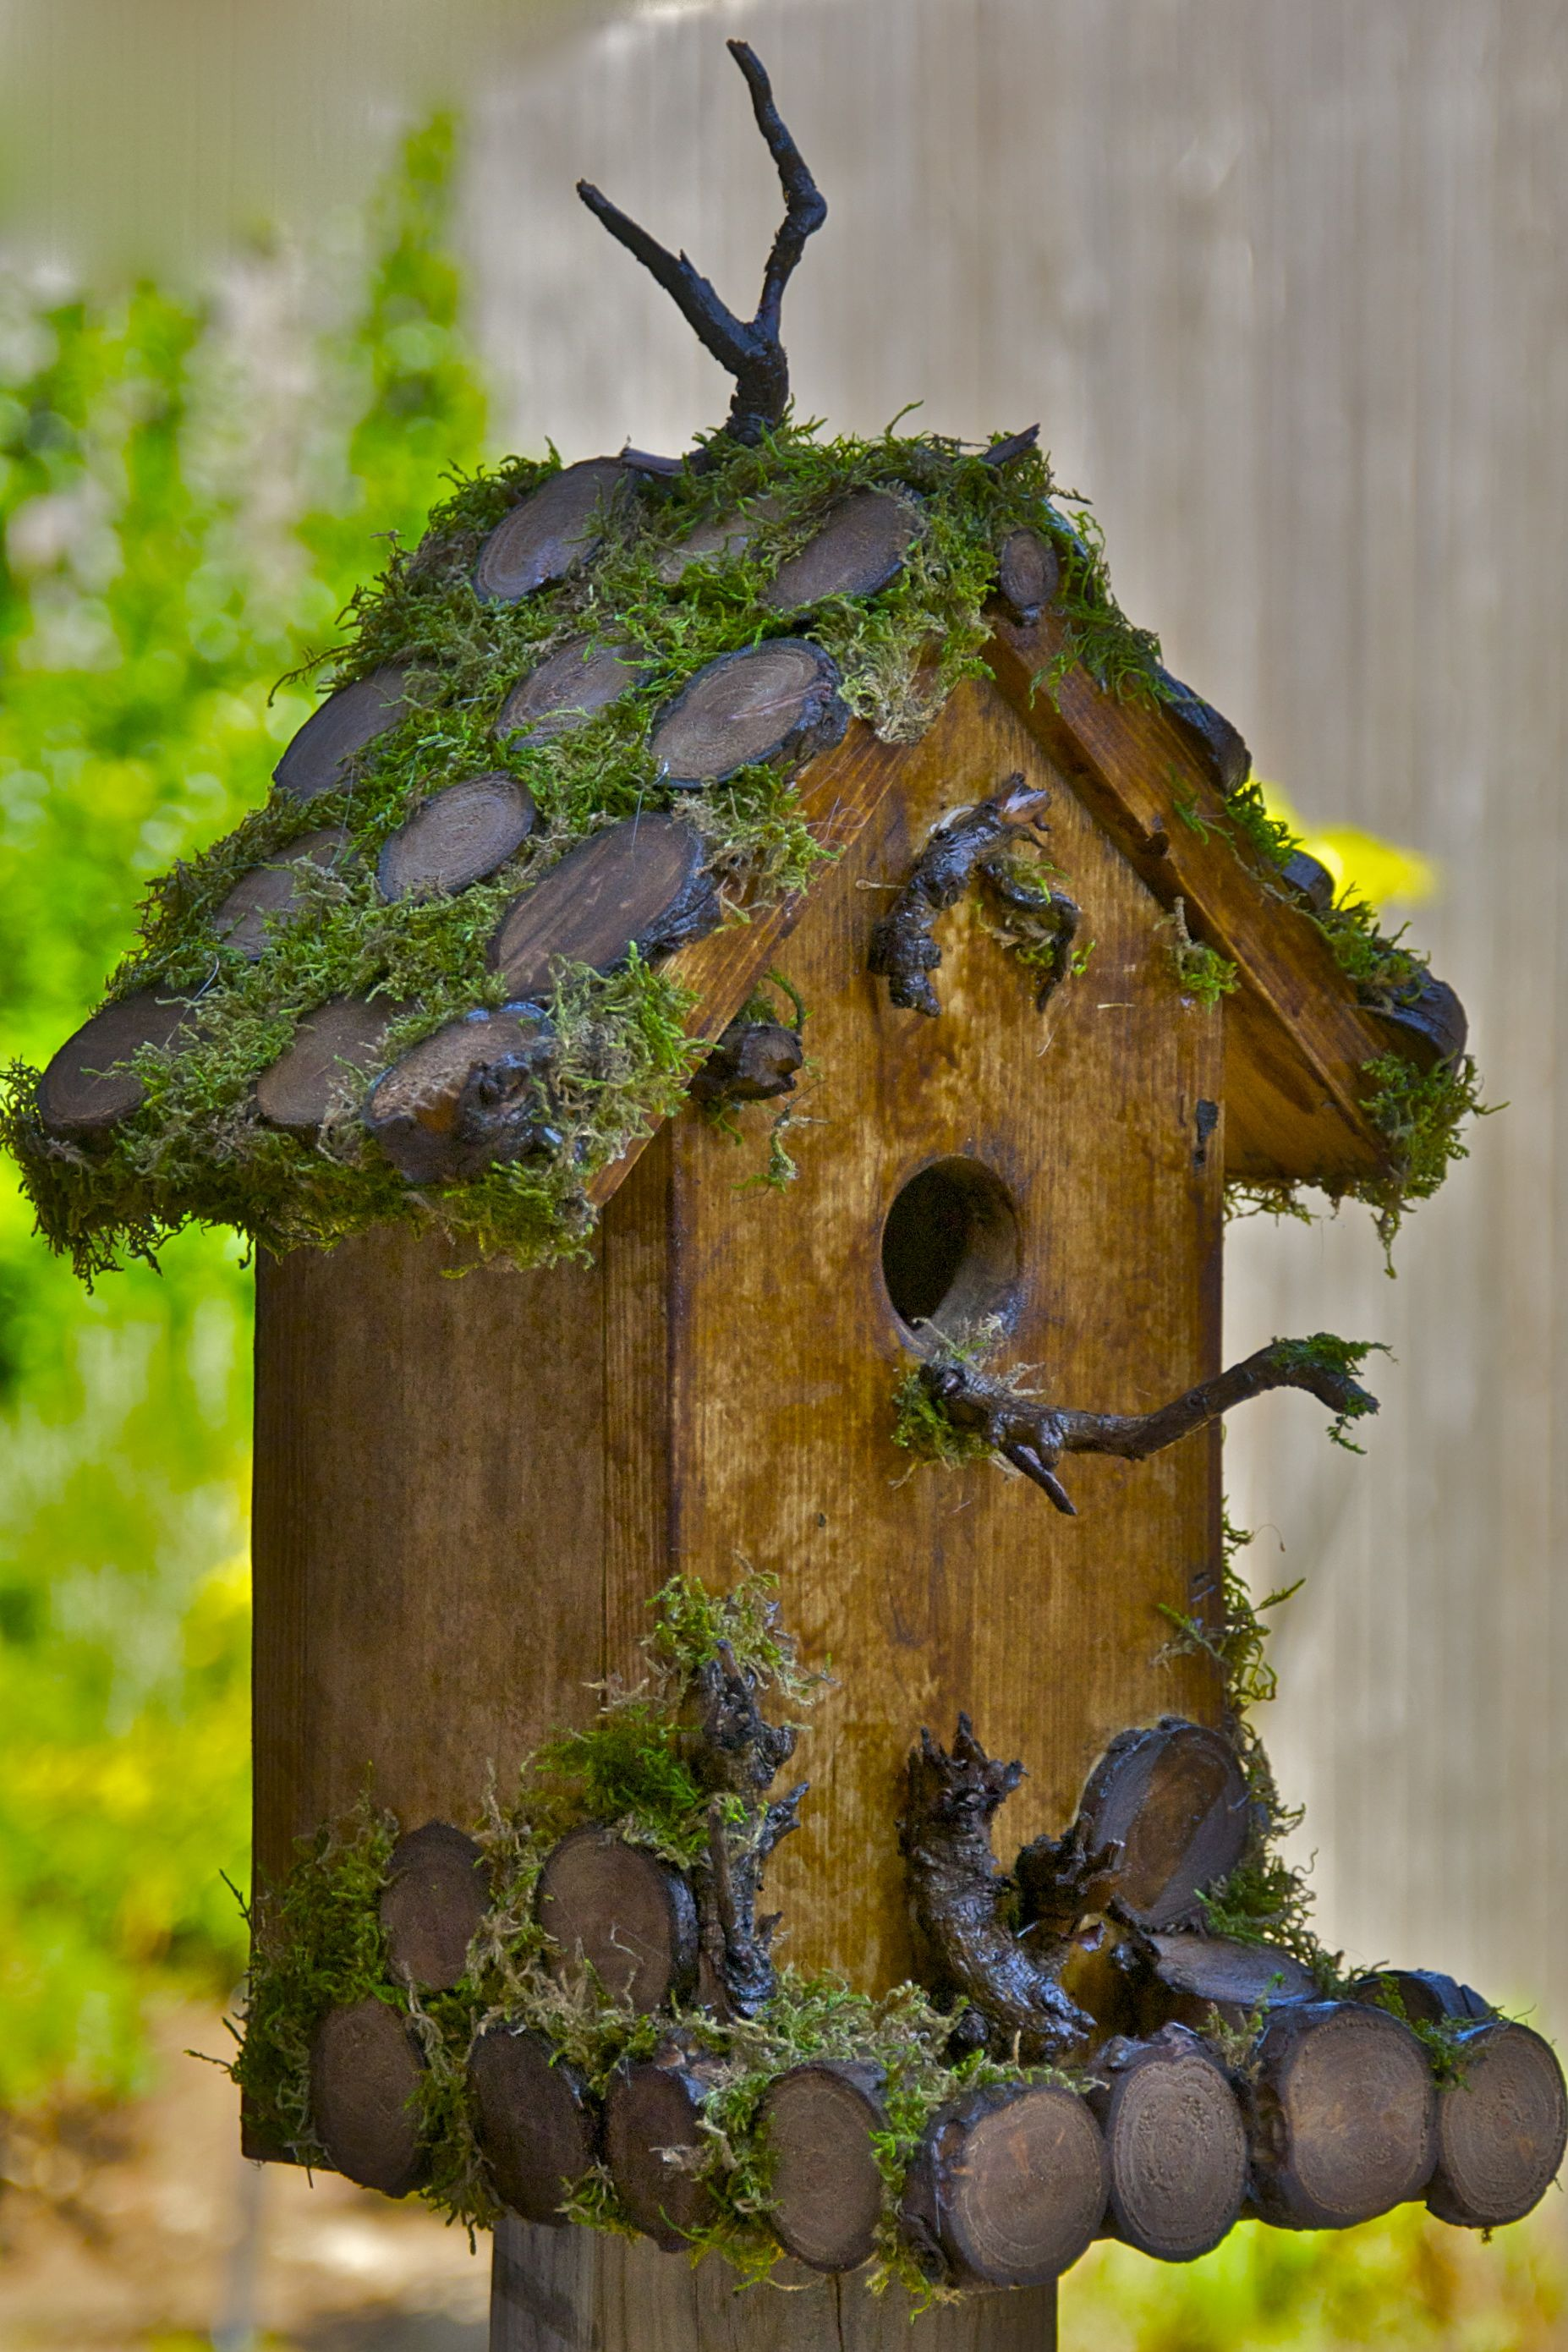 How To Build A Bird House Just Imagine Daily Dose Of Creativity Unique Bird Houses Bird House Bird House Kits